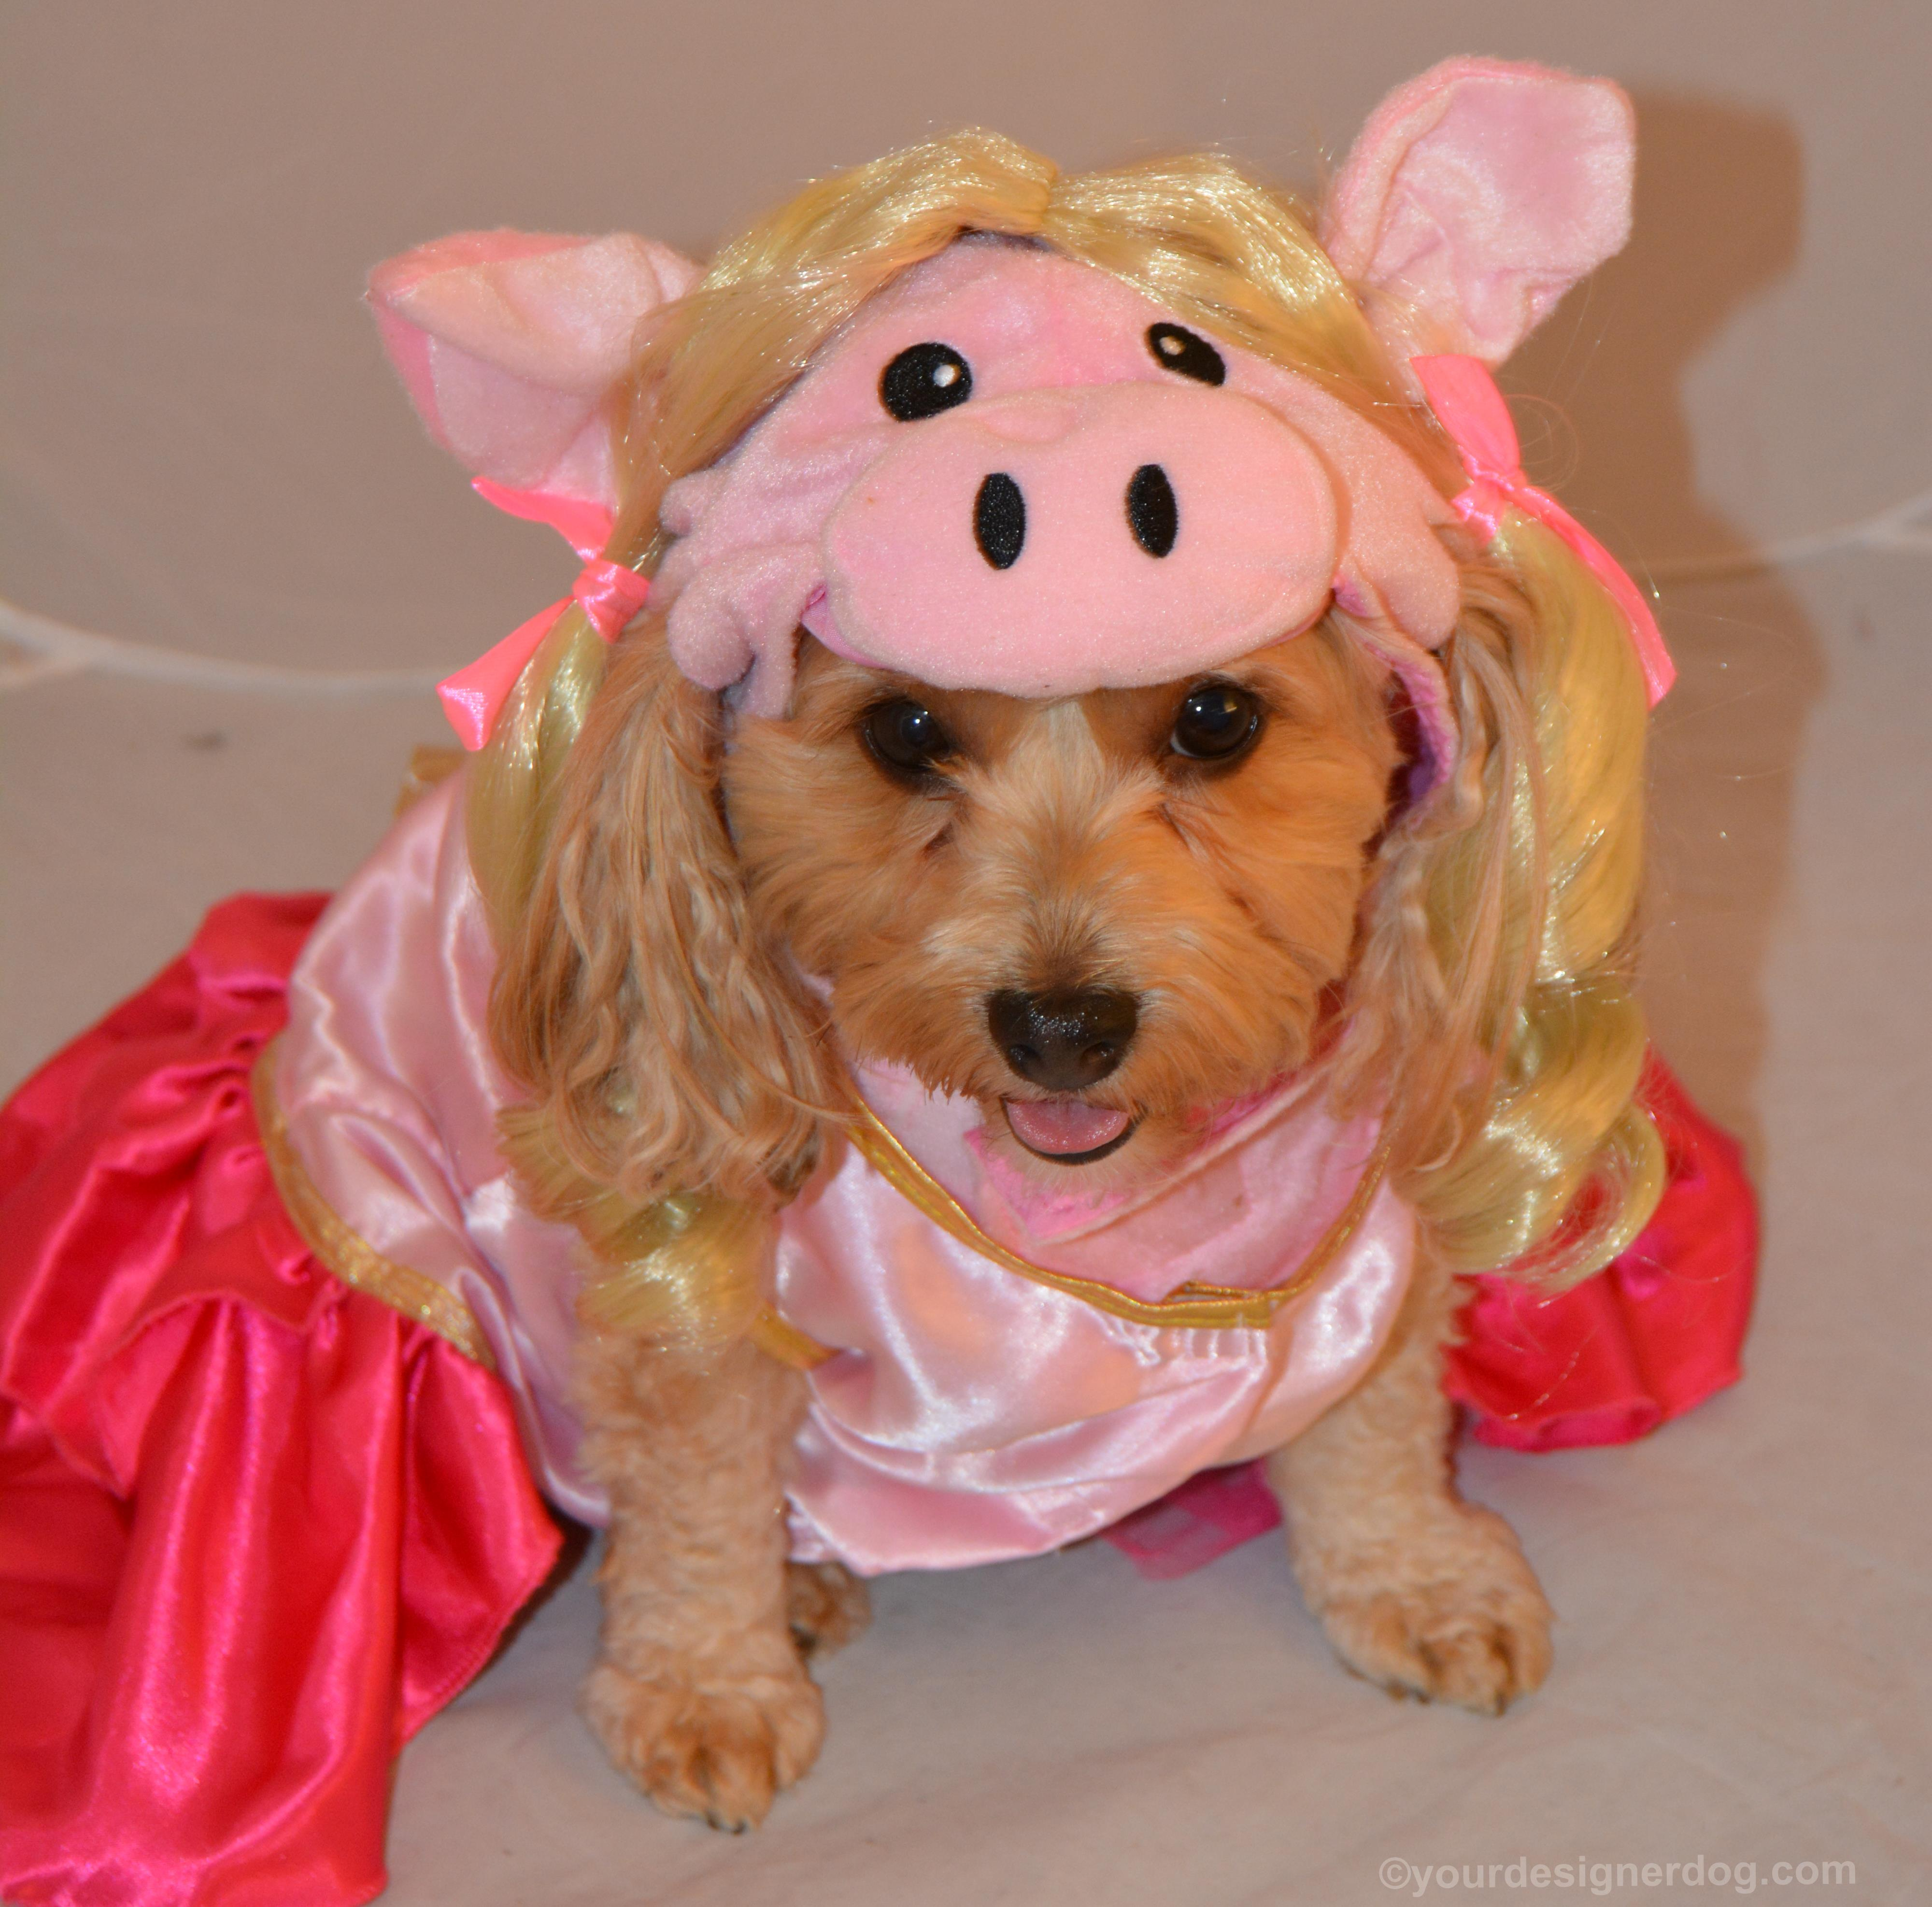 dogs, designer dogs, Yorkipoo, yorkie poo, muppets, miss piggy, Halloween, dog costume, pig costume